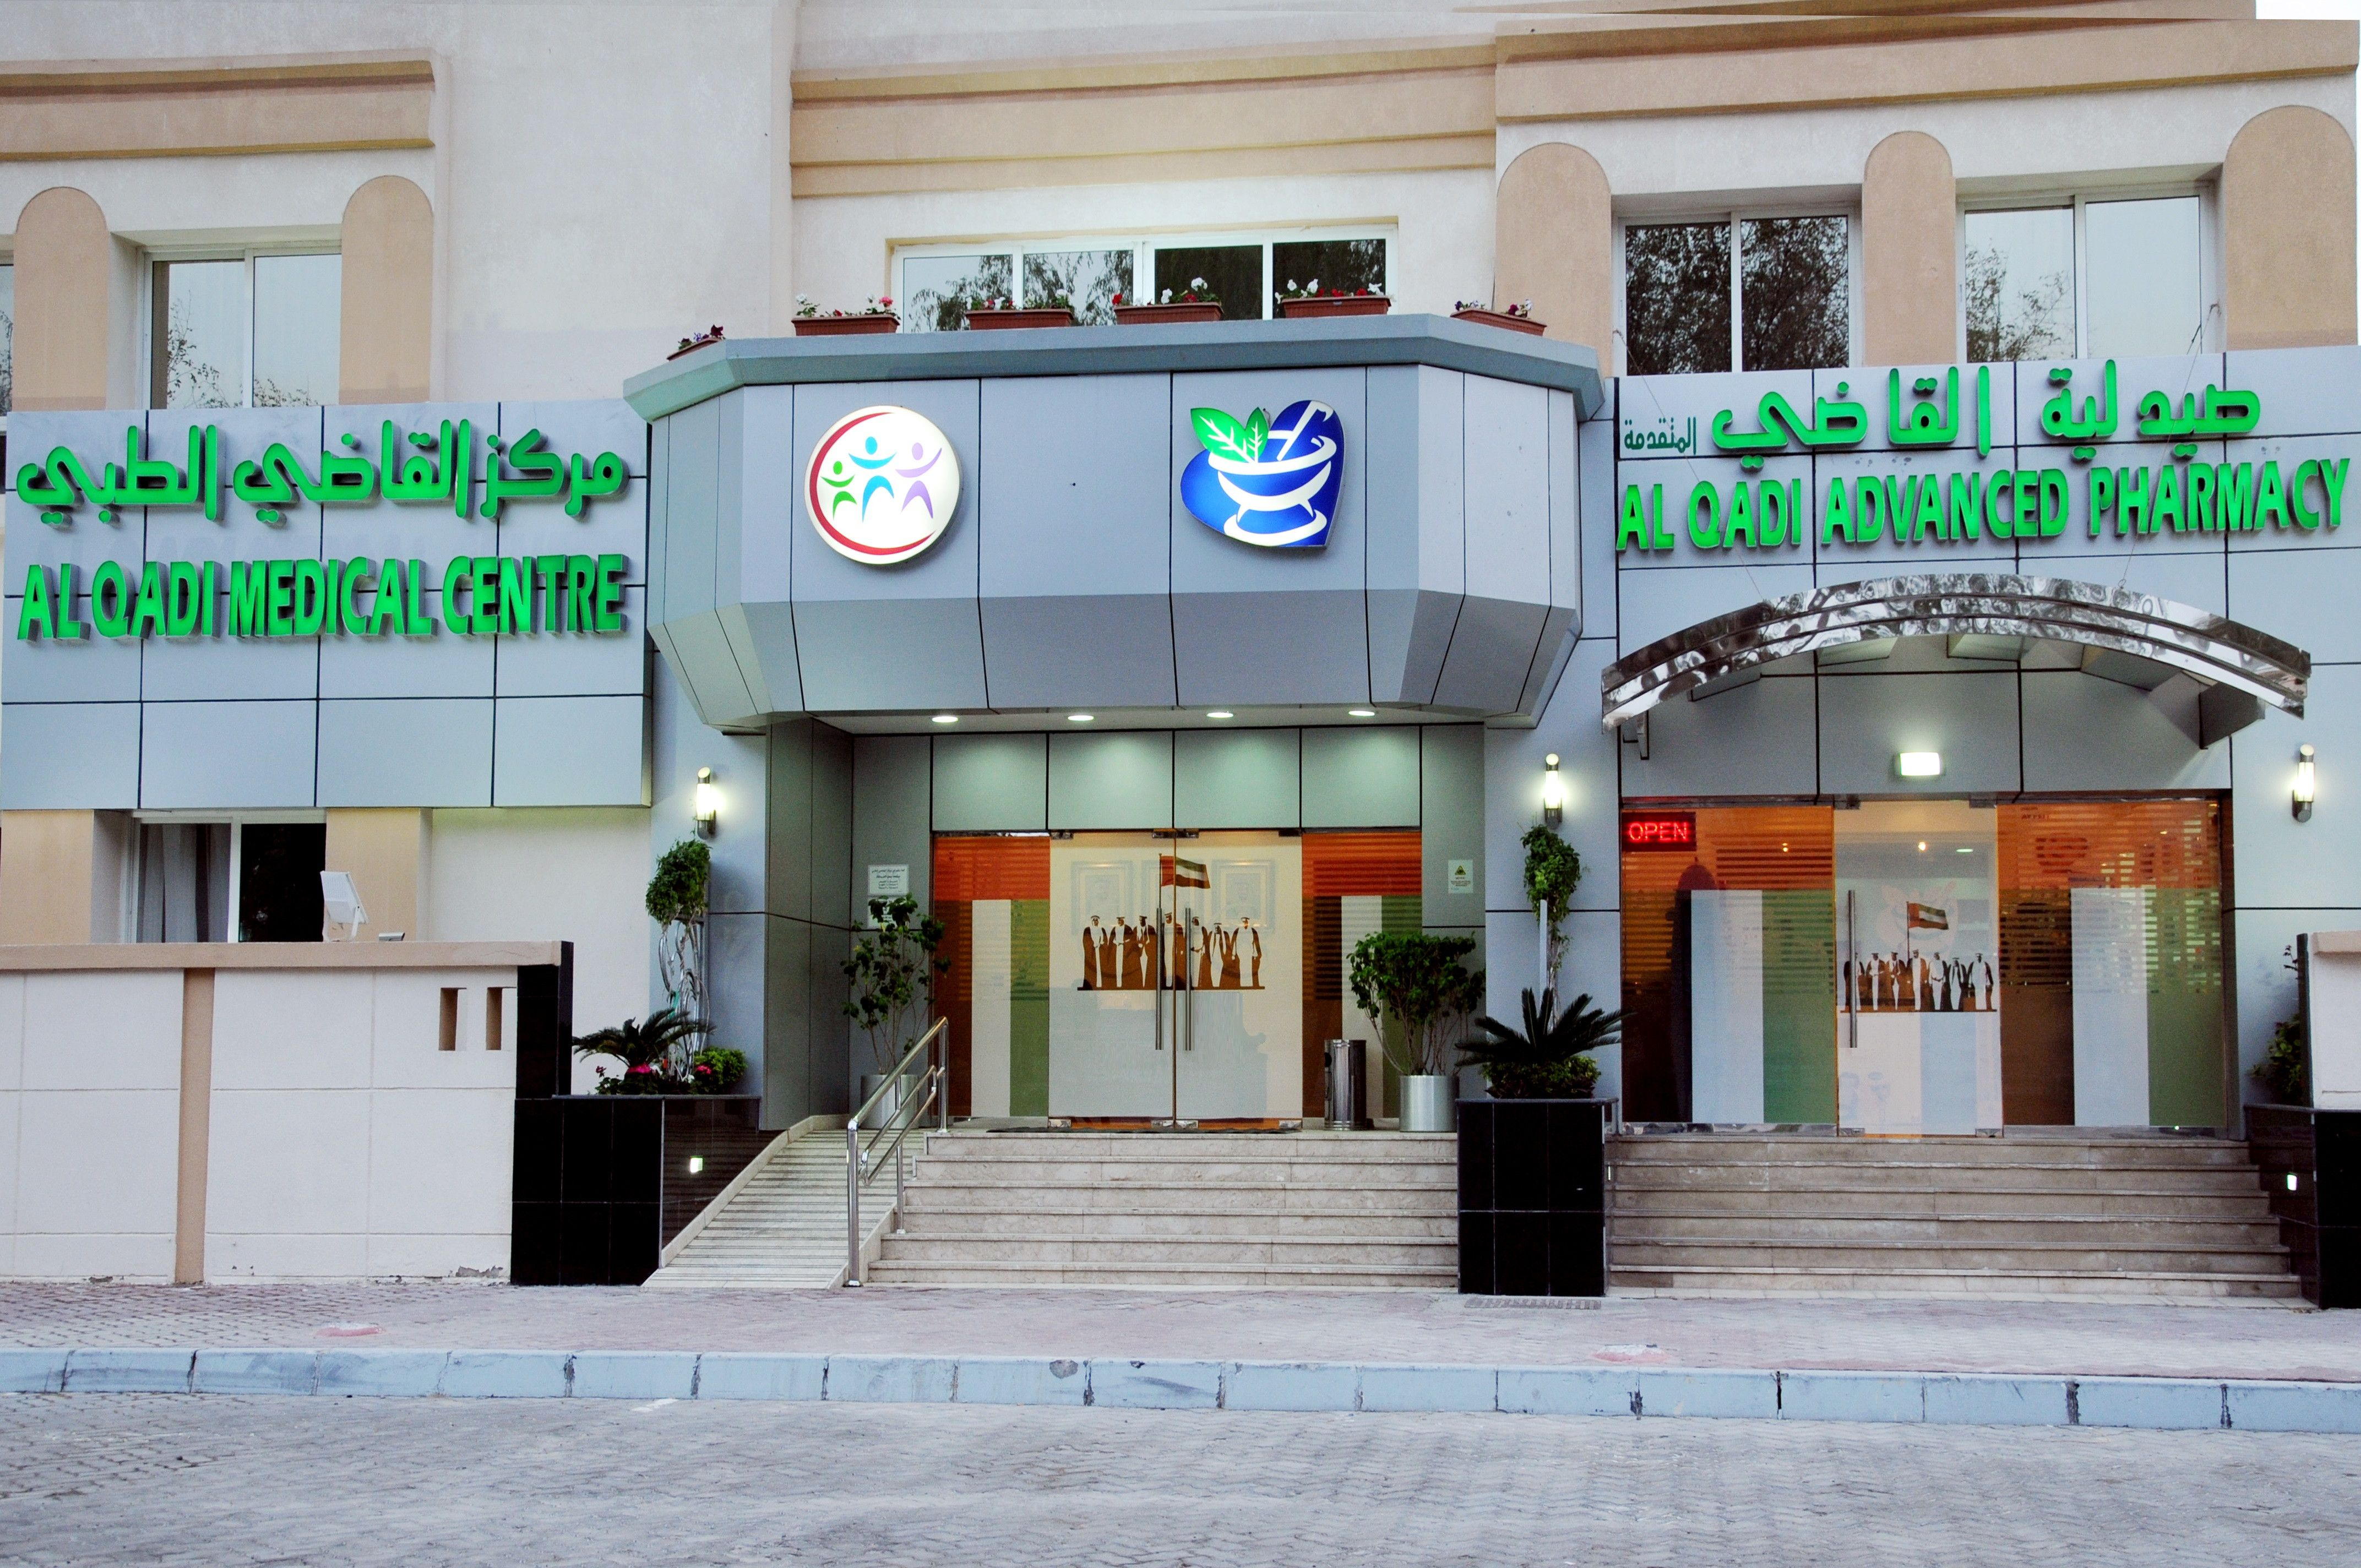 Al Qadi Medical Center